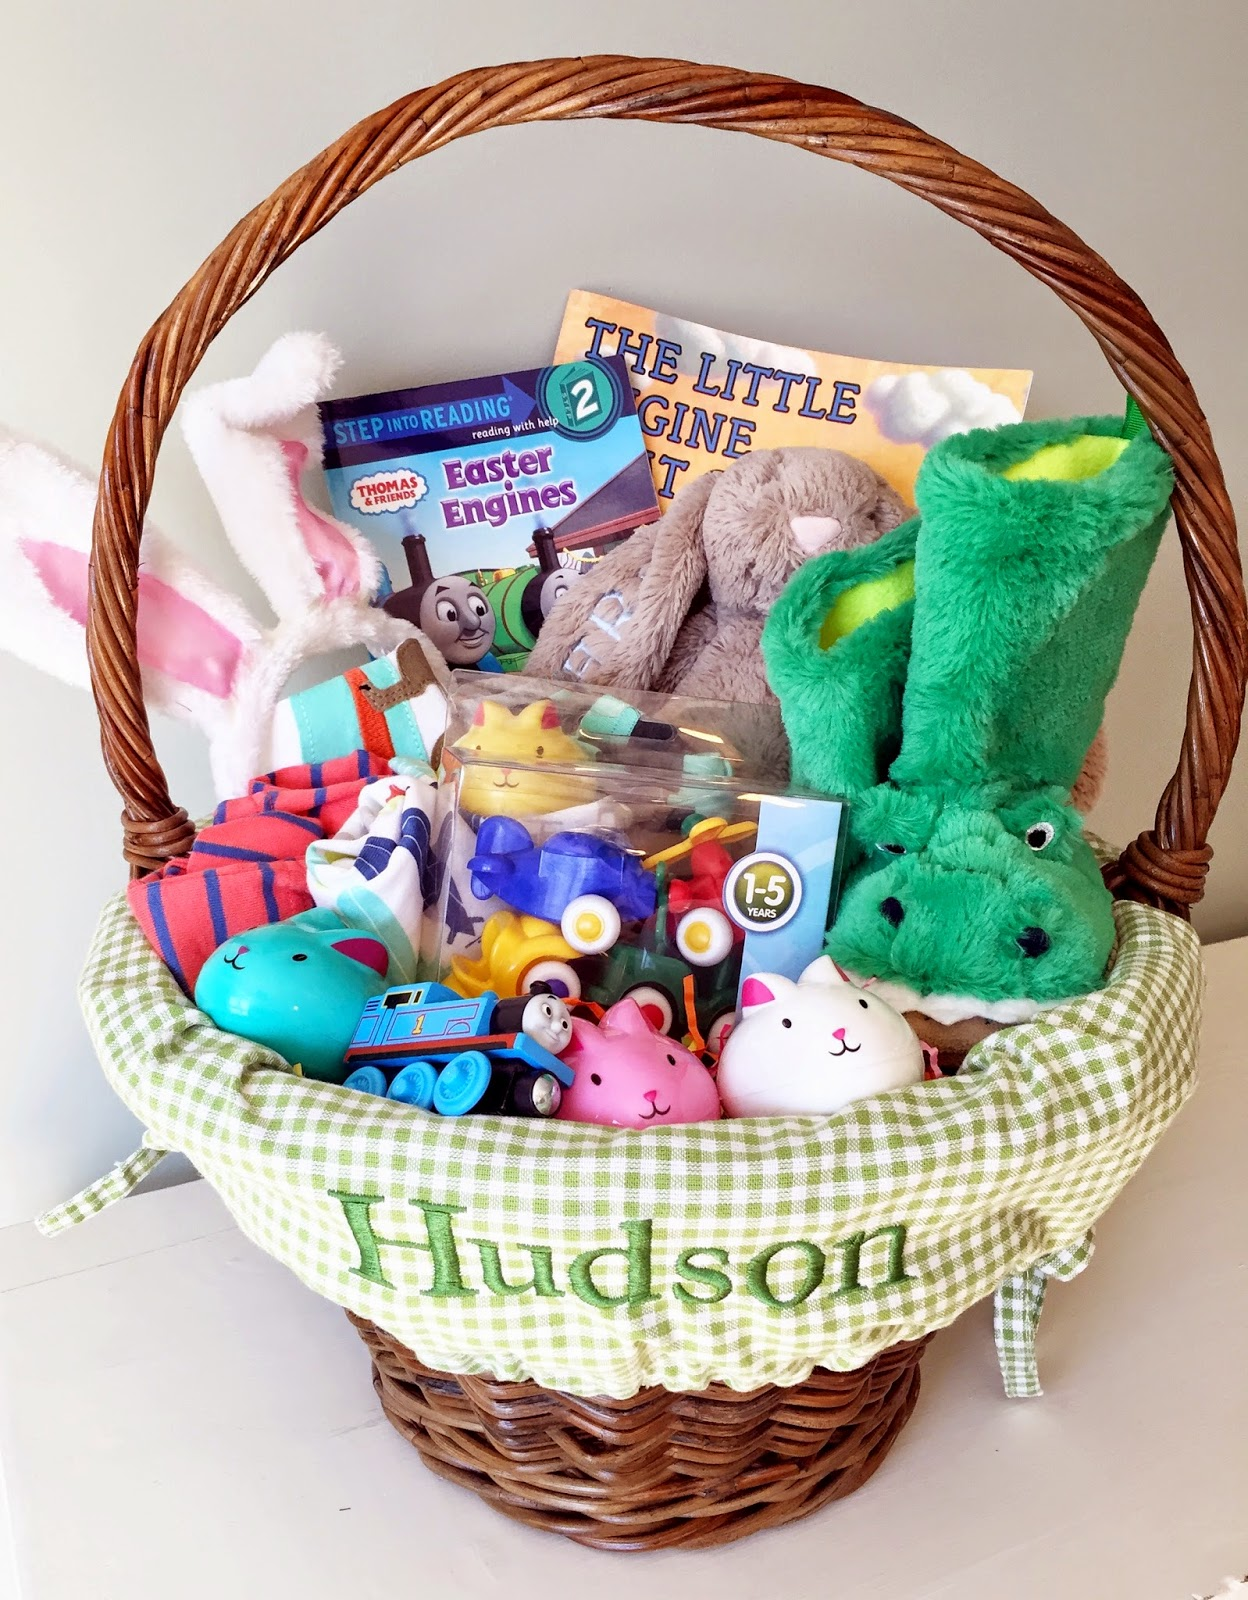 Hudsons easter basket the girl in the red shoes and the little engine that could book and of course some cute bunny eggs from target filled with little surprises negle Gallery